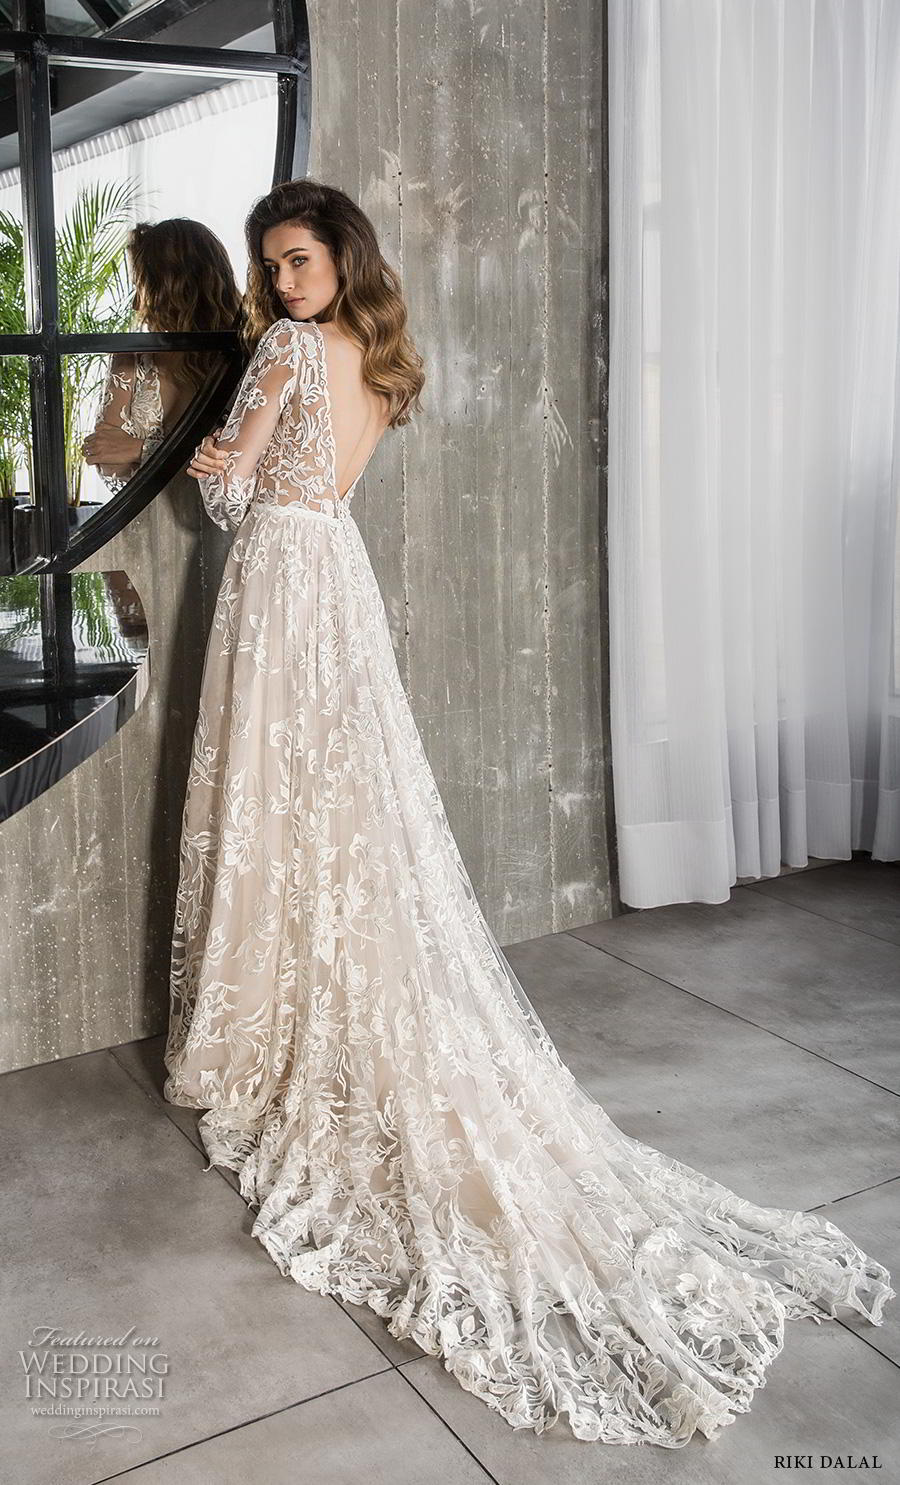 riki dalal 2018 glamour bridal long bishop sleeves deep v neck full embellishment romantic bohemian a line wedding dress backless v back chapel train (10) bv